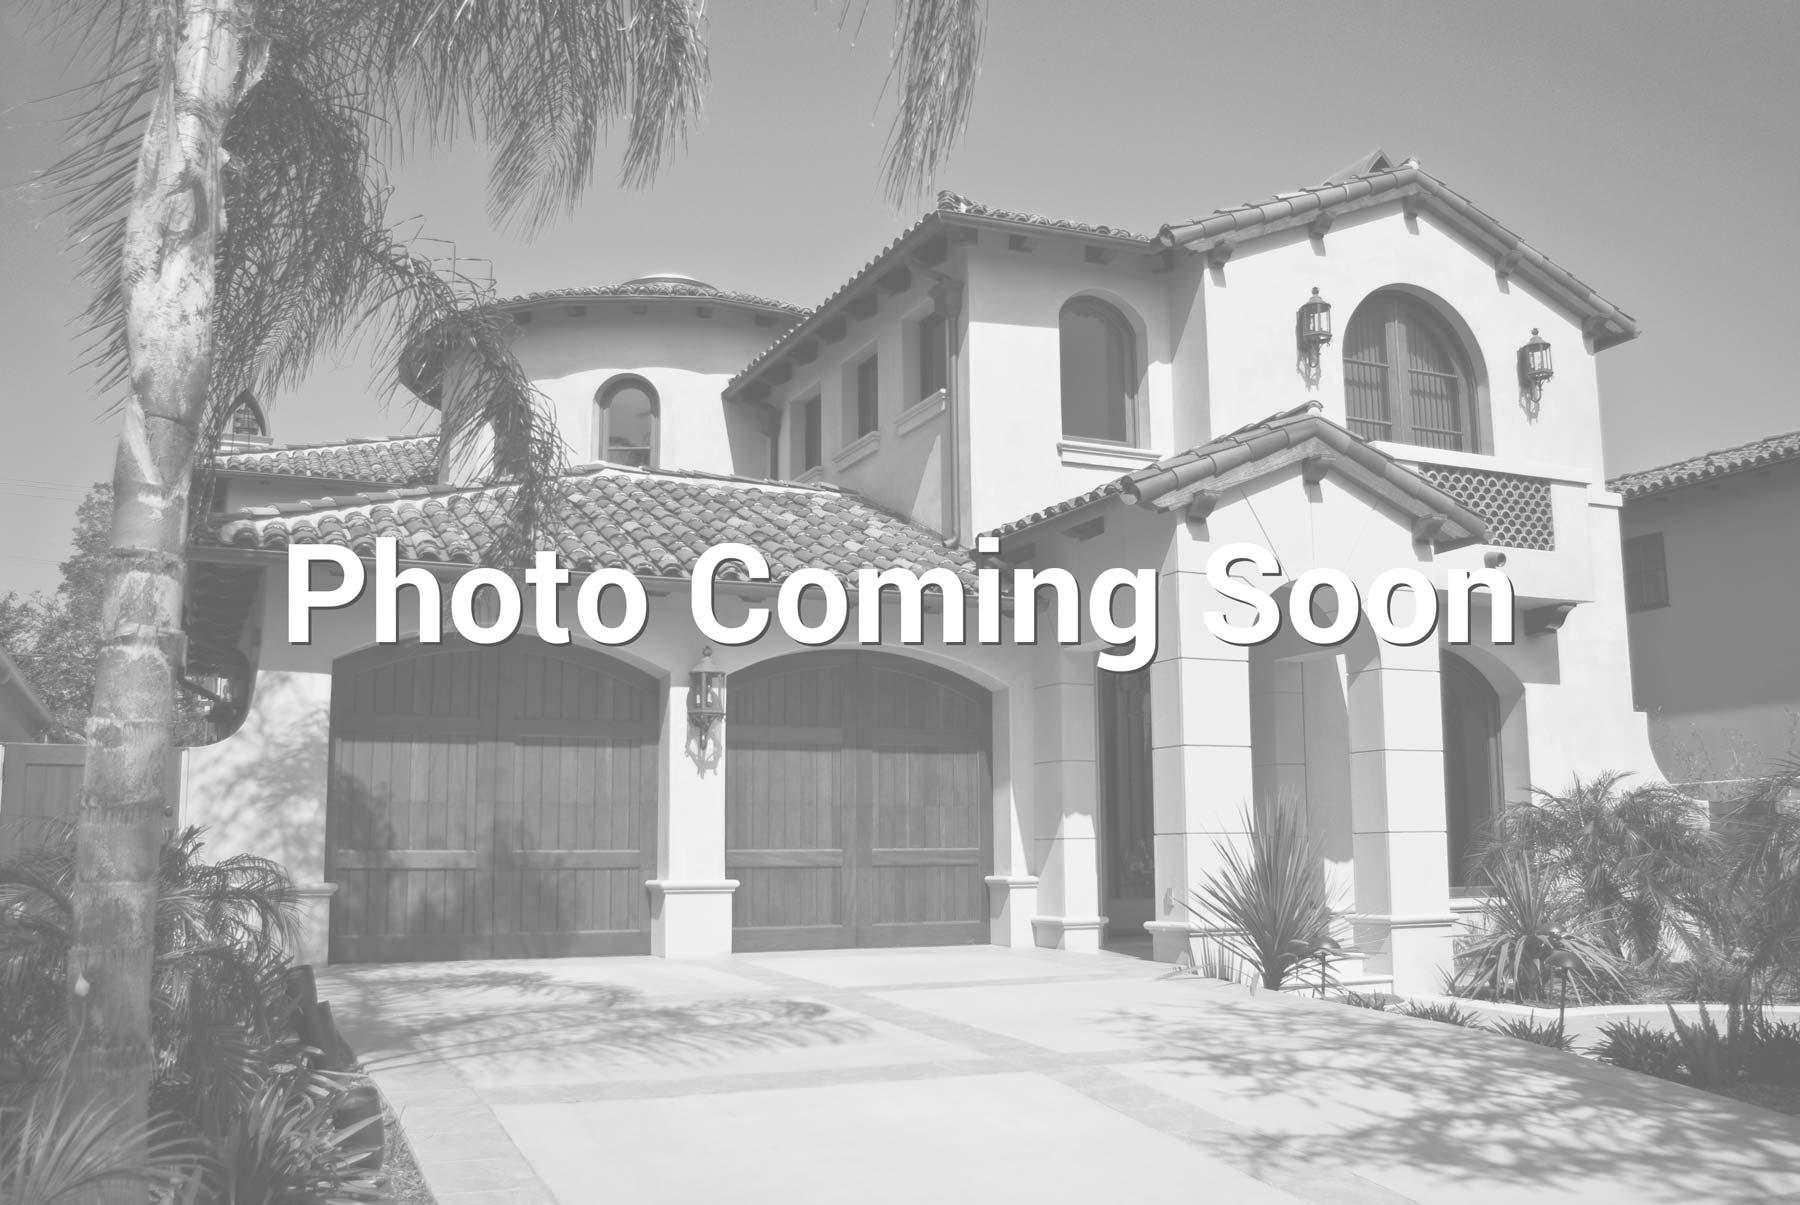 $640,000 - 5Br/3Ba - Home for Sale in Fountain Hills Arizona No. 428 Tracts A Thru H, Fountain Hills